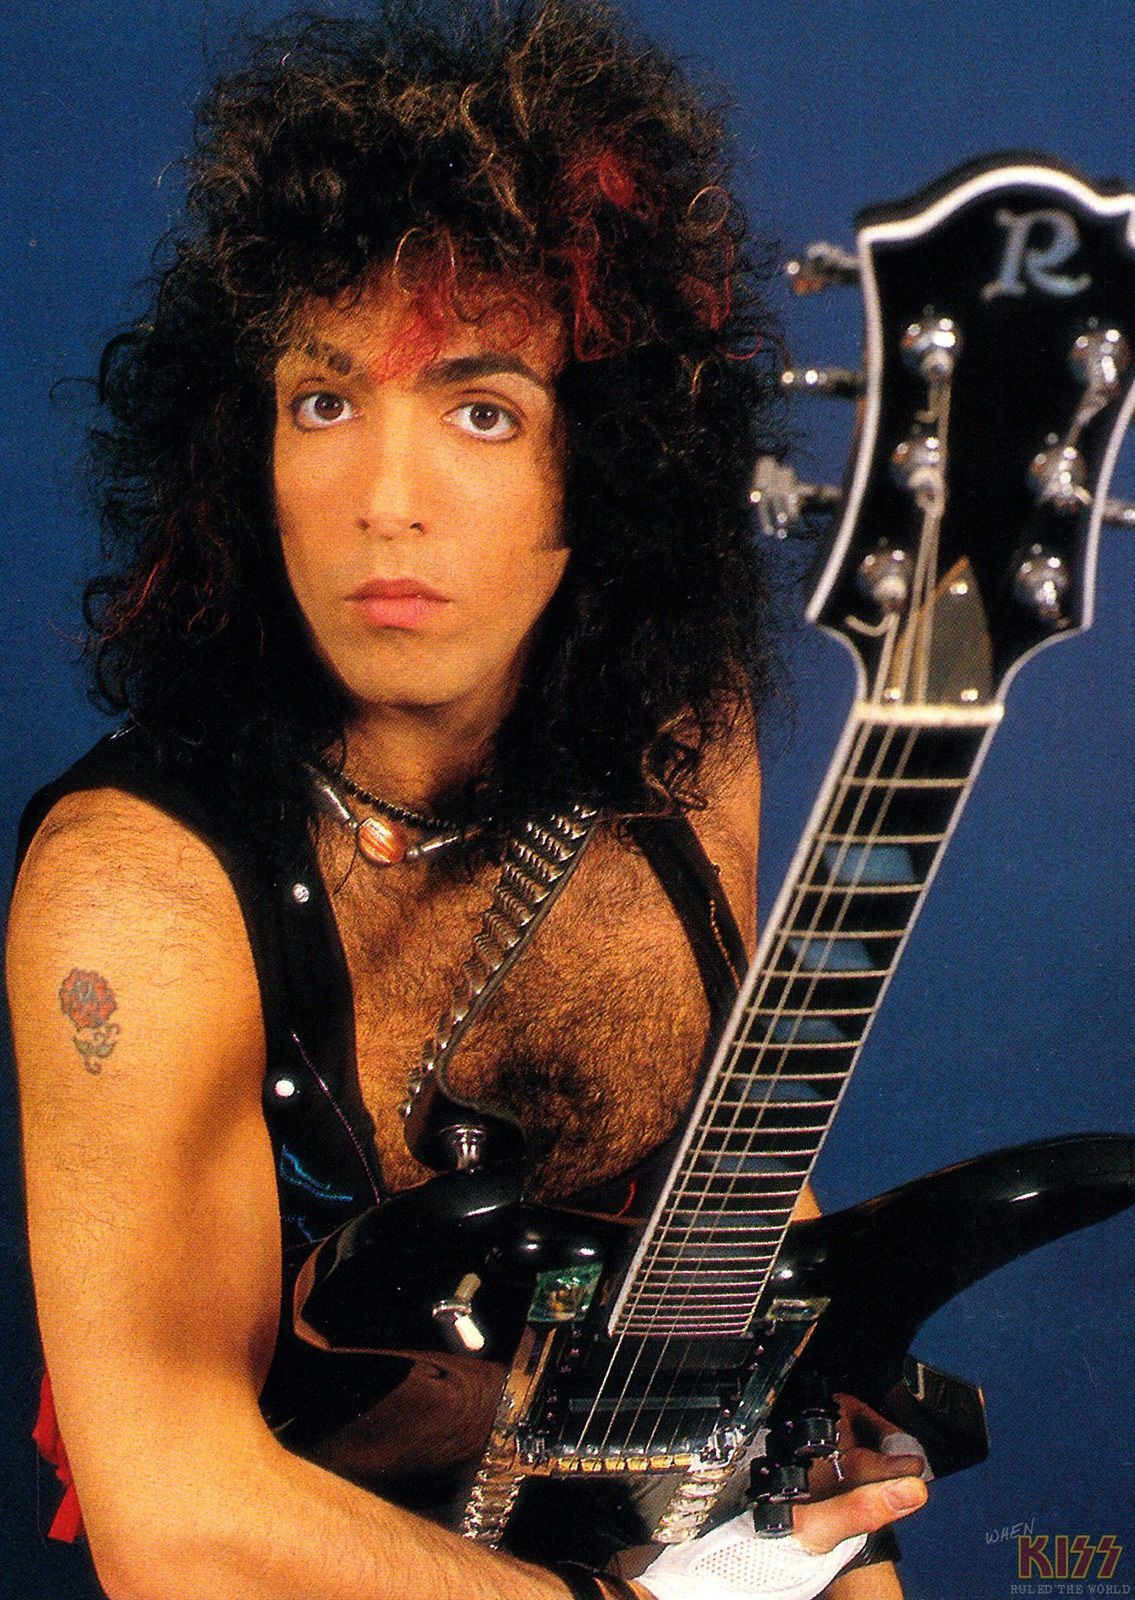 Paul Stanley - October 1984 - Kiss - Animalize Photo Session